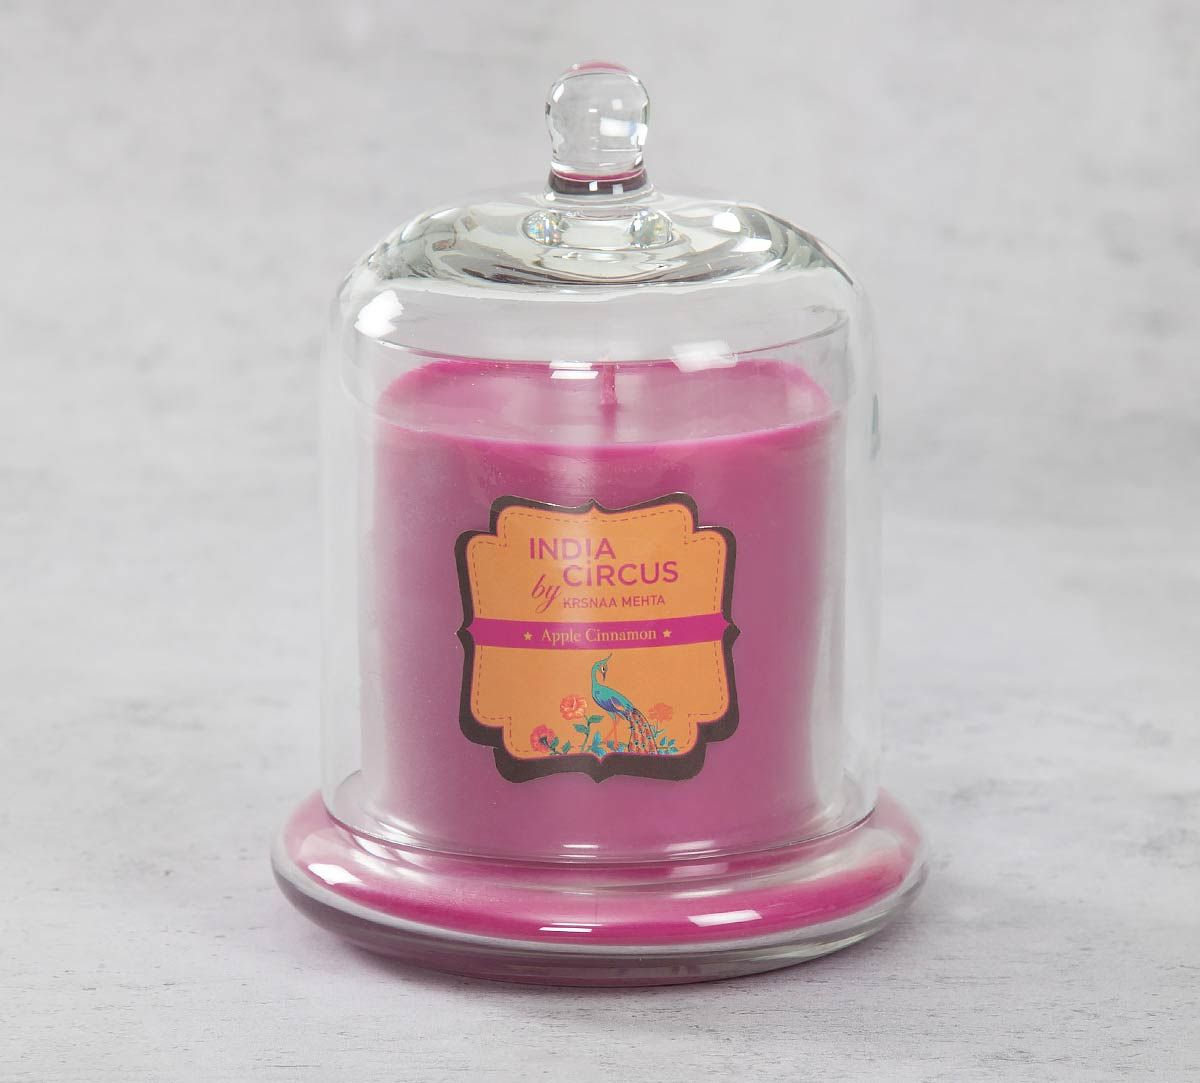 India Circus Apple Cinnamon Glass Jar Scented Candle